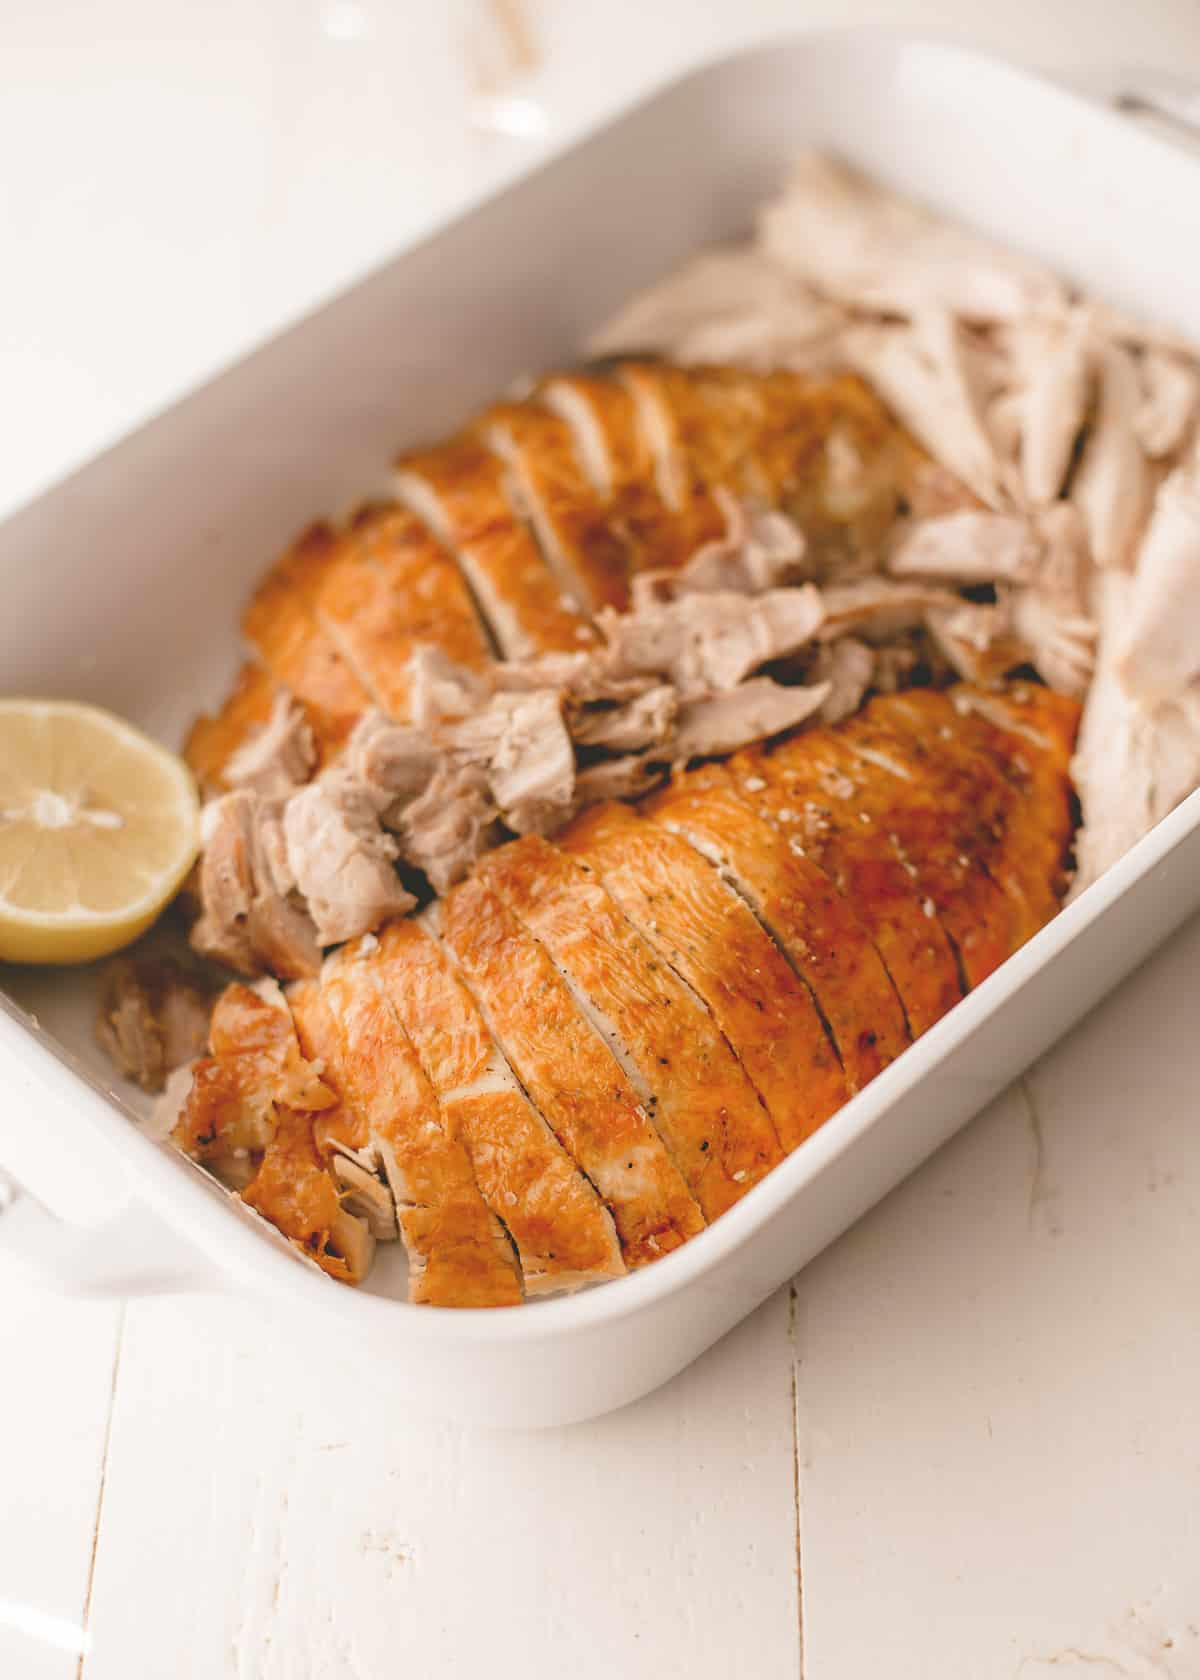 sliced roasted turkey in a baking dish